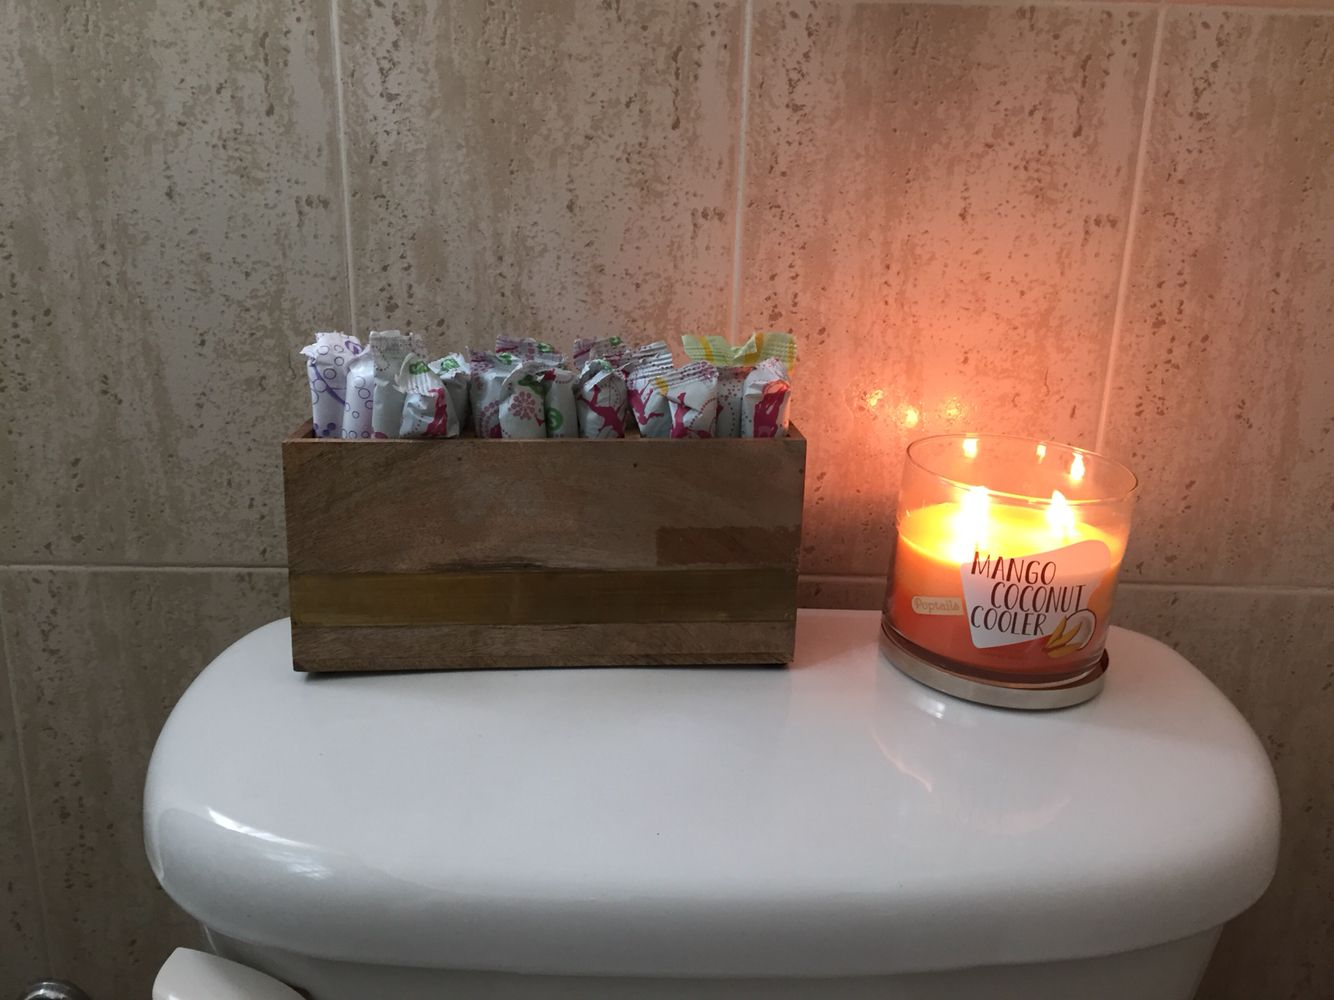 Diy Tampon Holder For Bathroom  Diy Home Projects  Pinterest Beauteous Can You Go To The Bathroom With A Tampon In Design Decoration